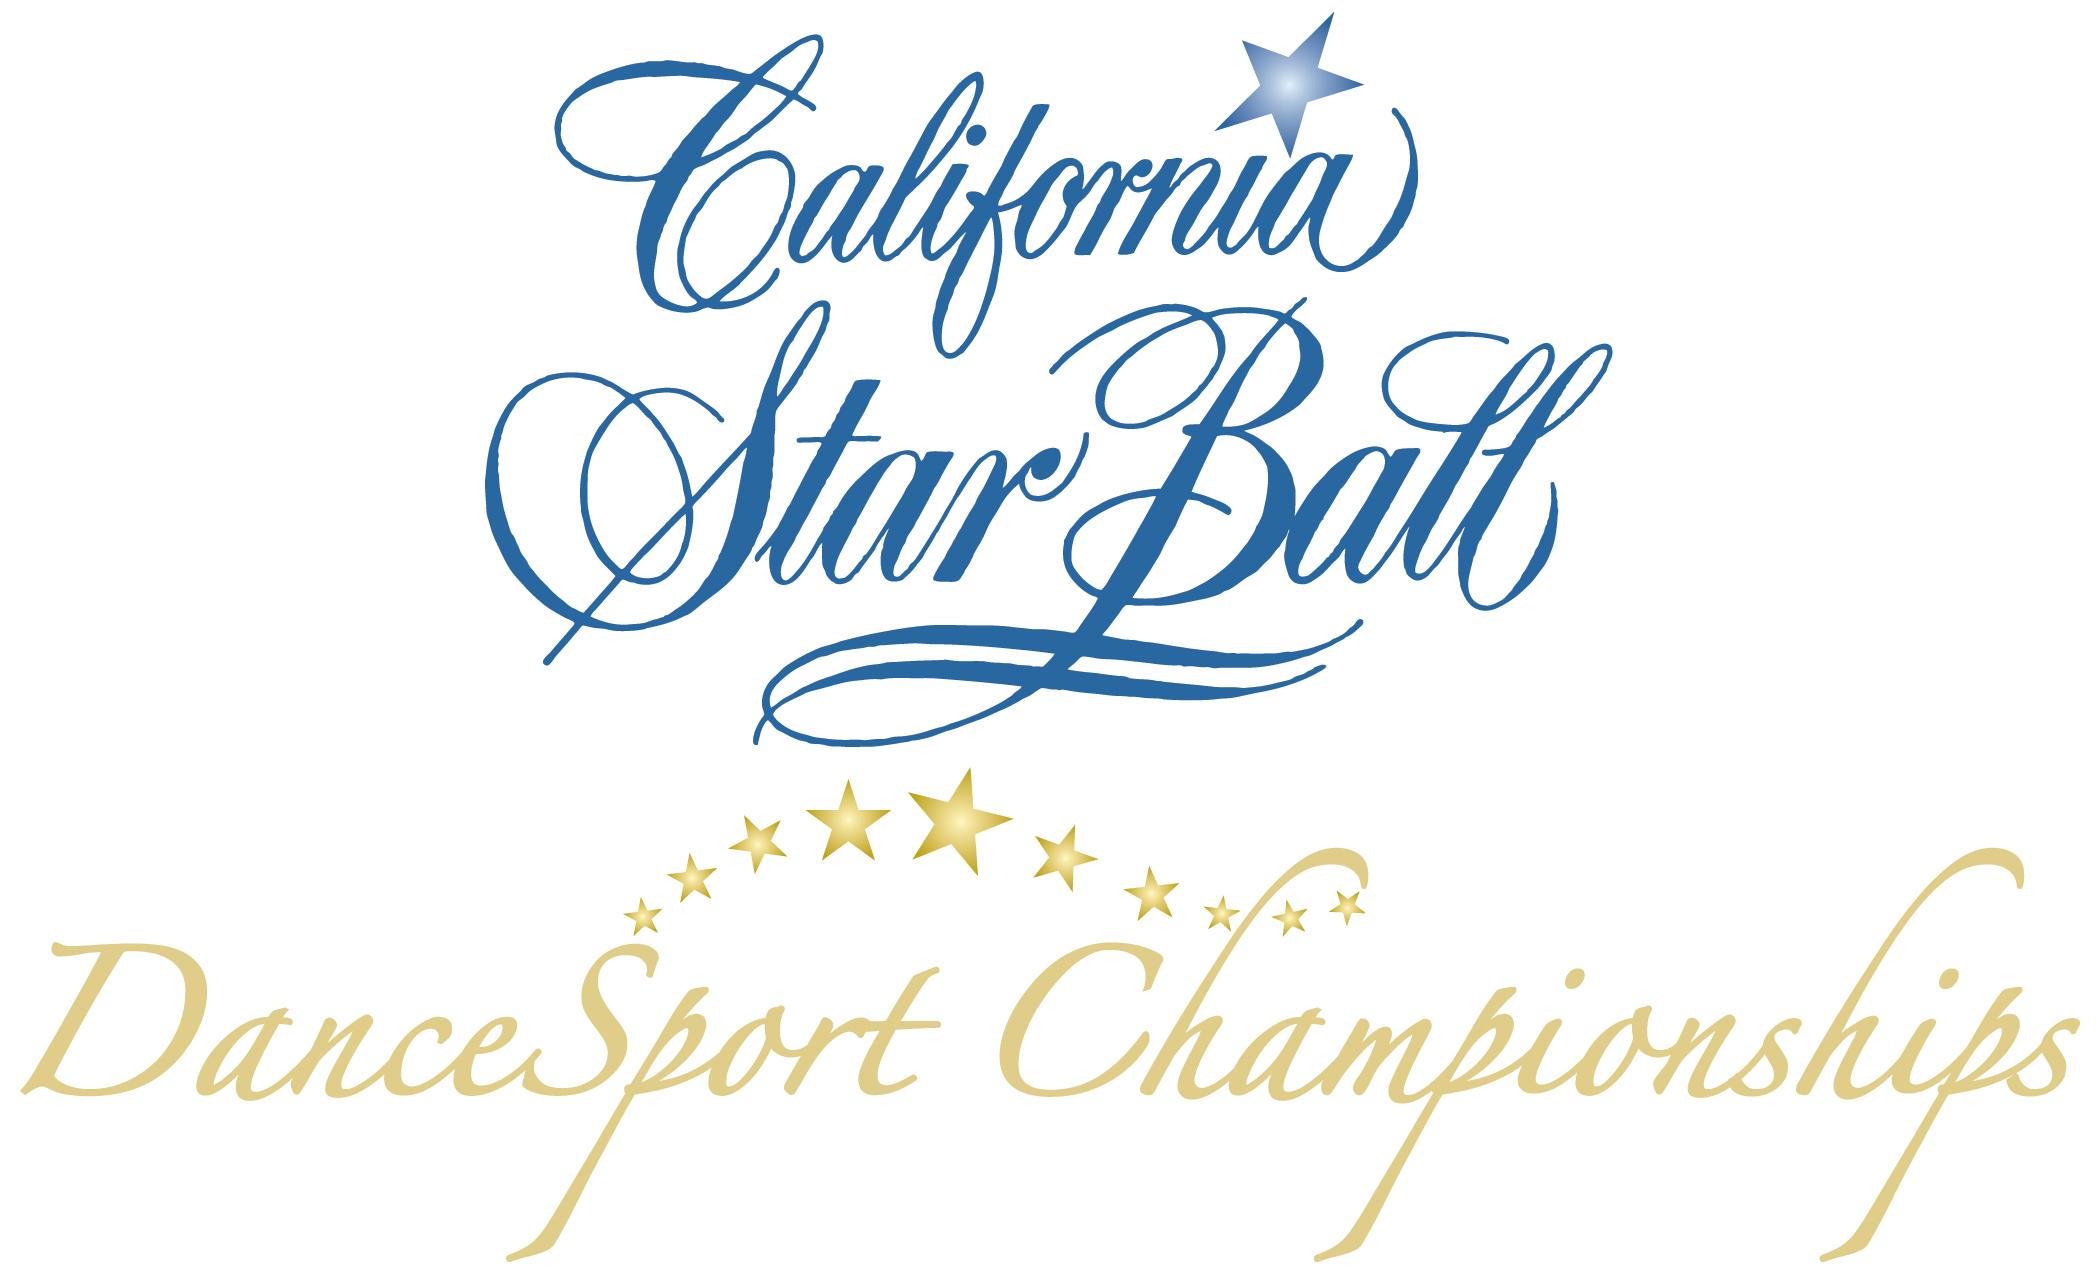 California Star Ball DanceSport Championships